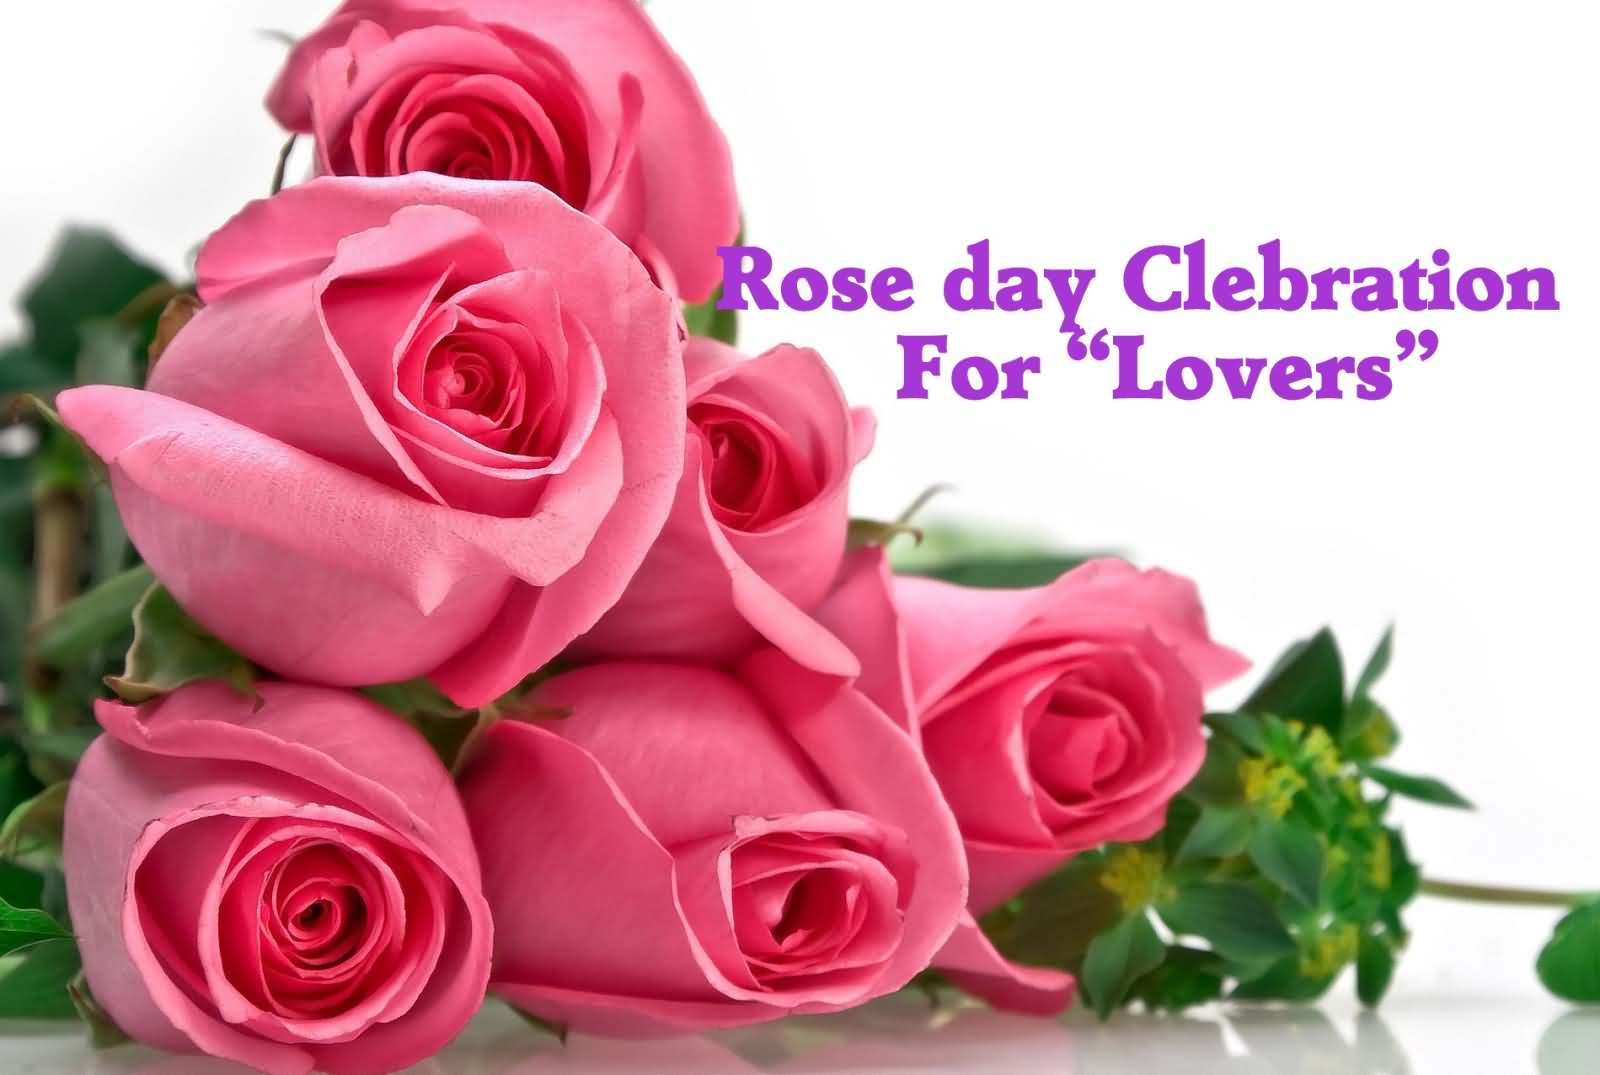 Happy Rose Day Celebration For Lovers Beautiful Pink Roses Wallpaper